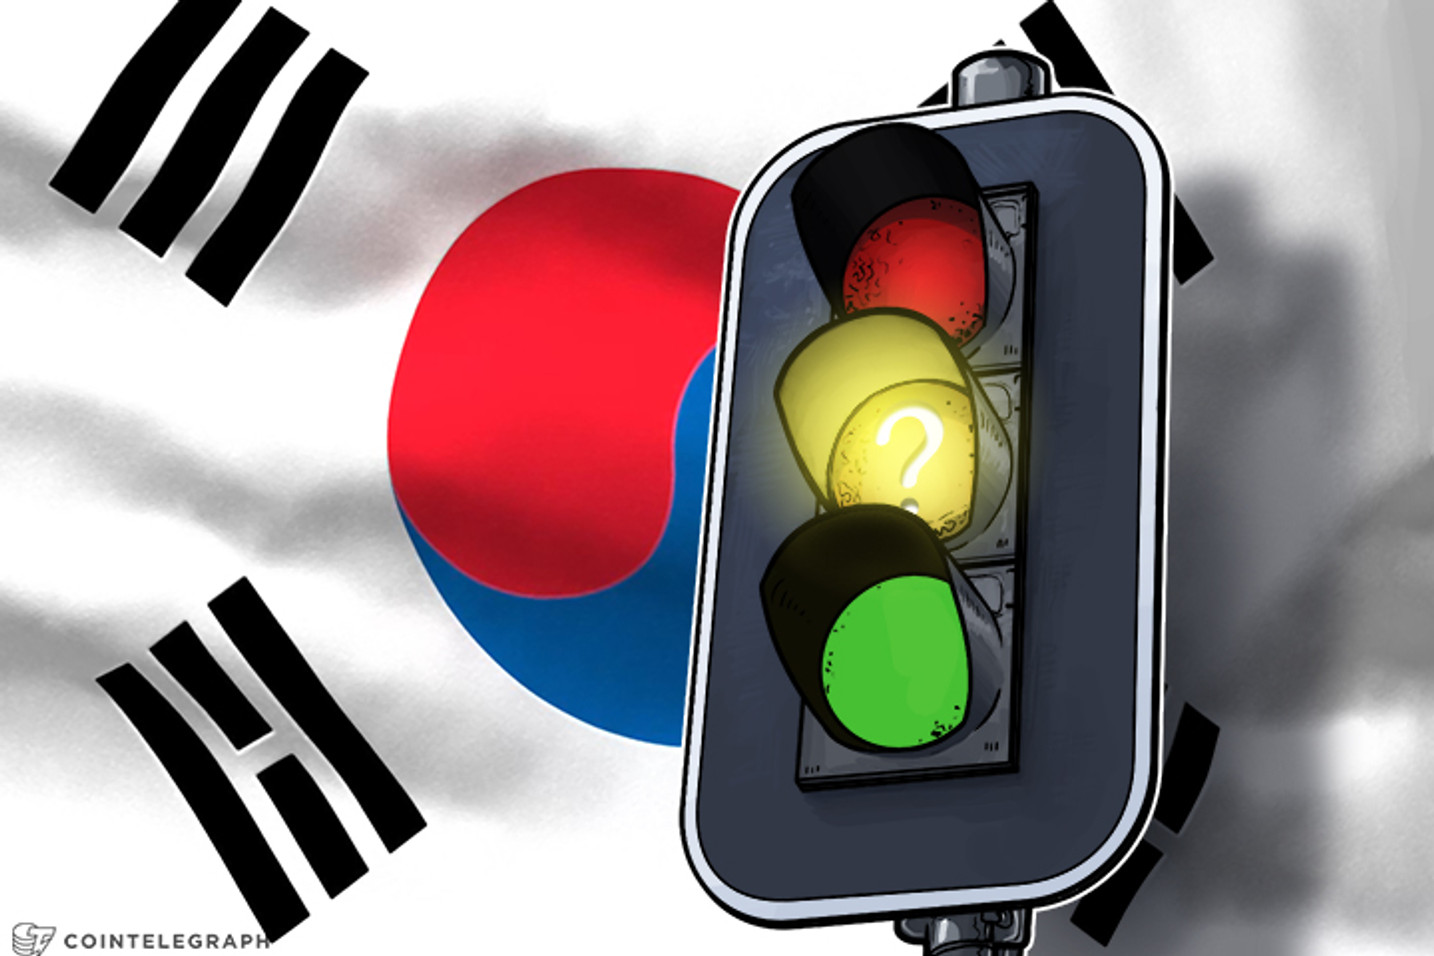 'Nothing Finalized': South Korea Gov't Ministries Diverge Over Crypto Ban Proposal